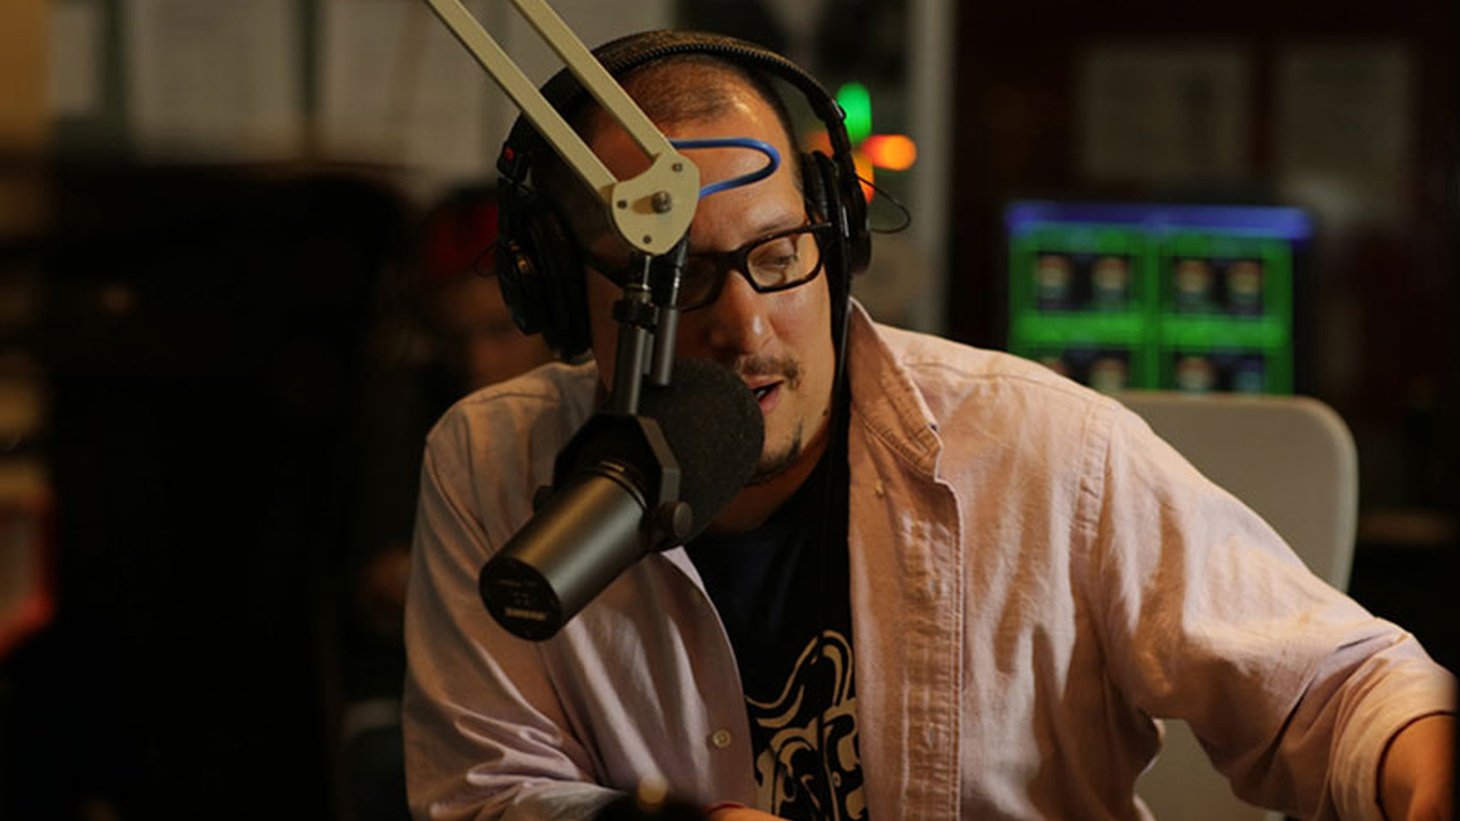 Mario Cotto hosts a kaleidoscopic Dada dance party! Check out the latest show On-Demand.